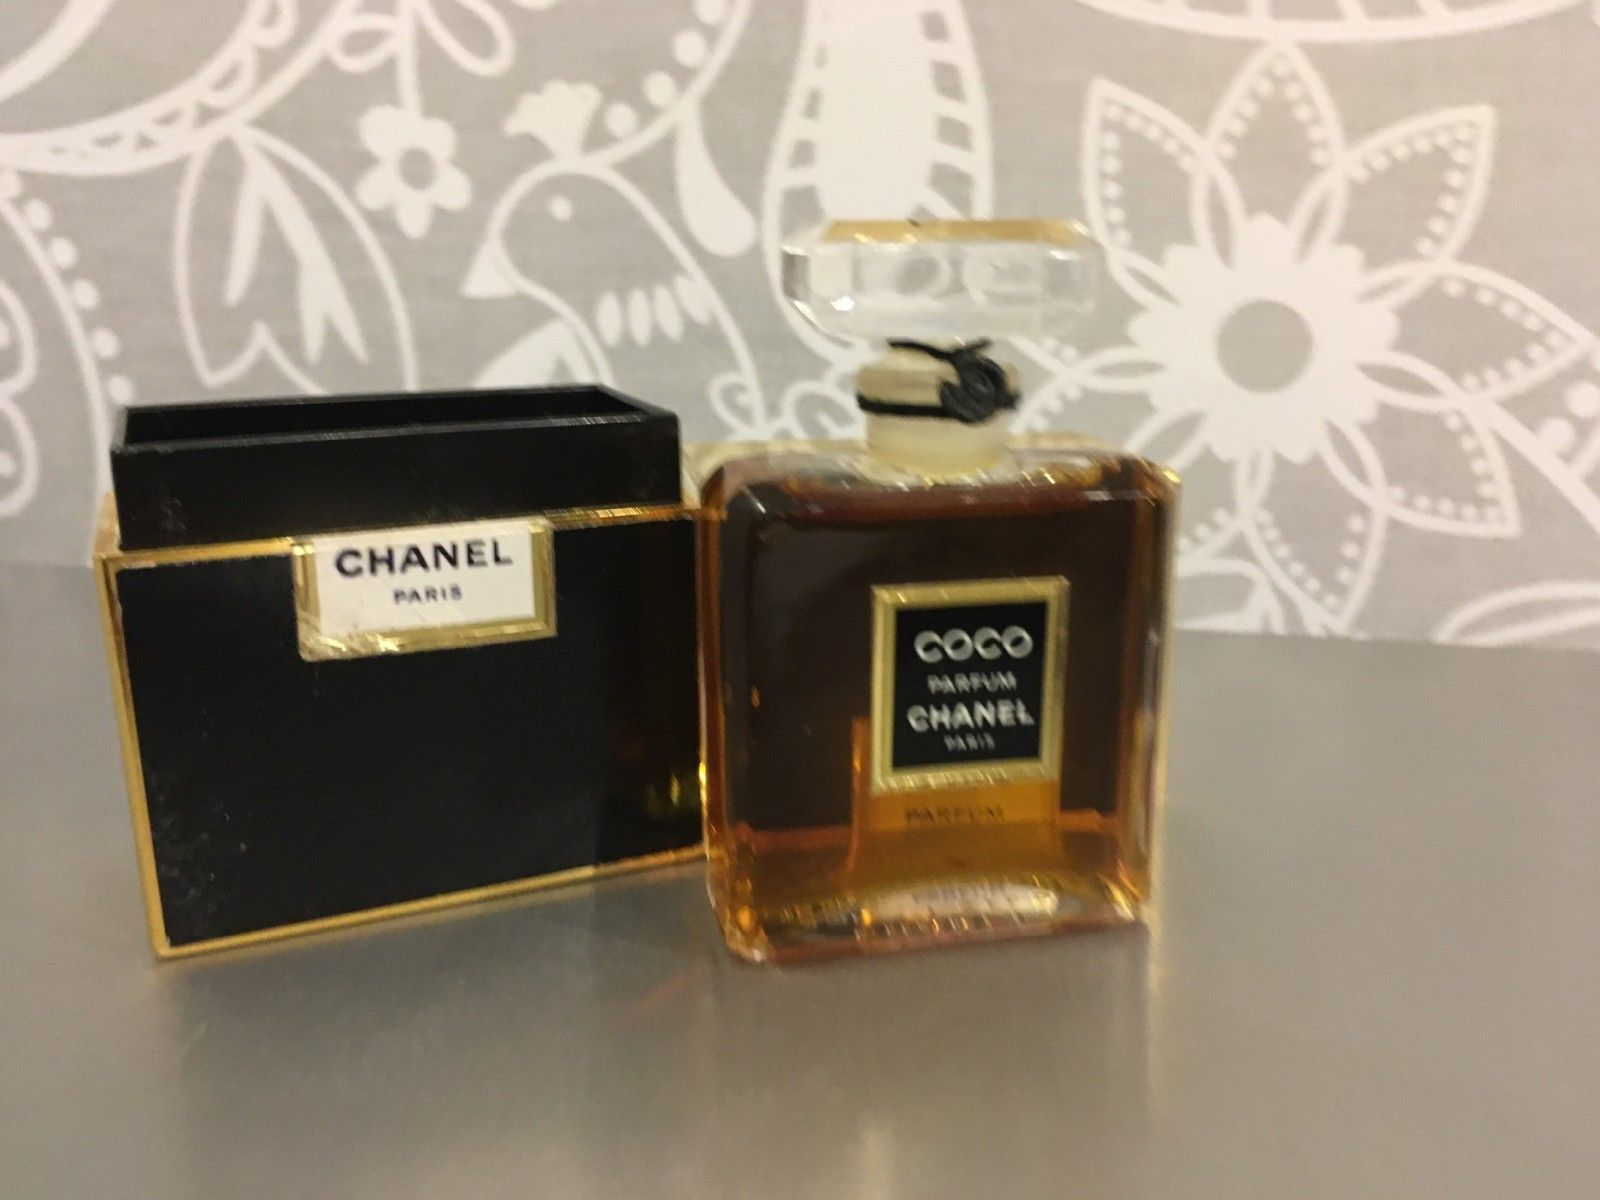 COCO Chanel 0.5oz/ 15ml new&sealed image 2